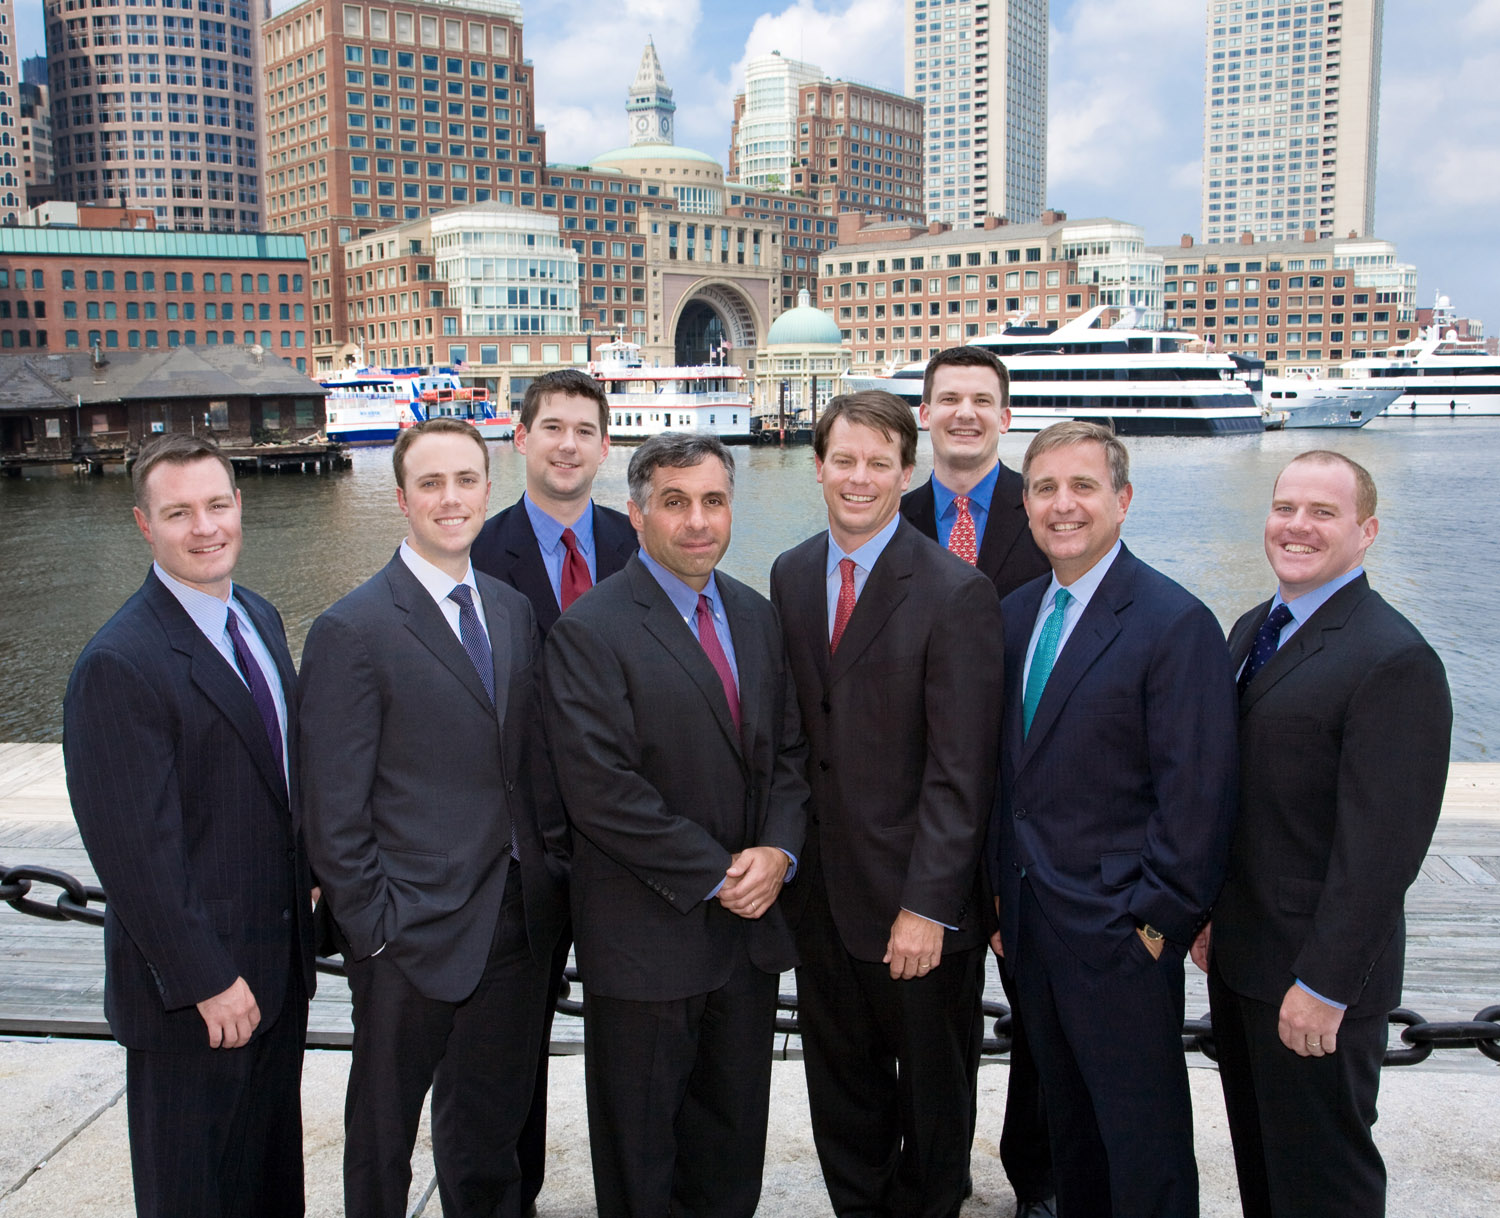 management team on Boston's waterfront